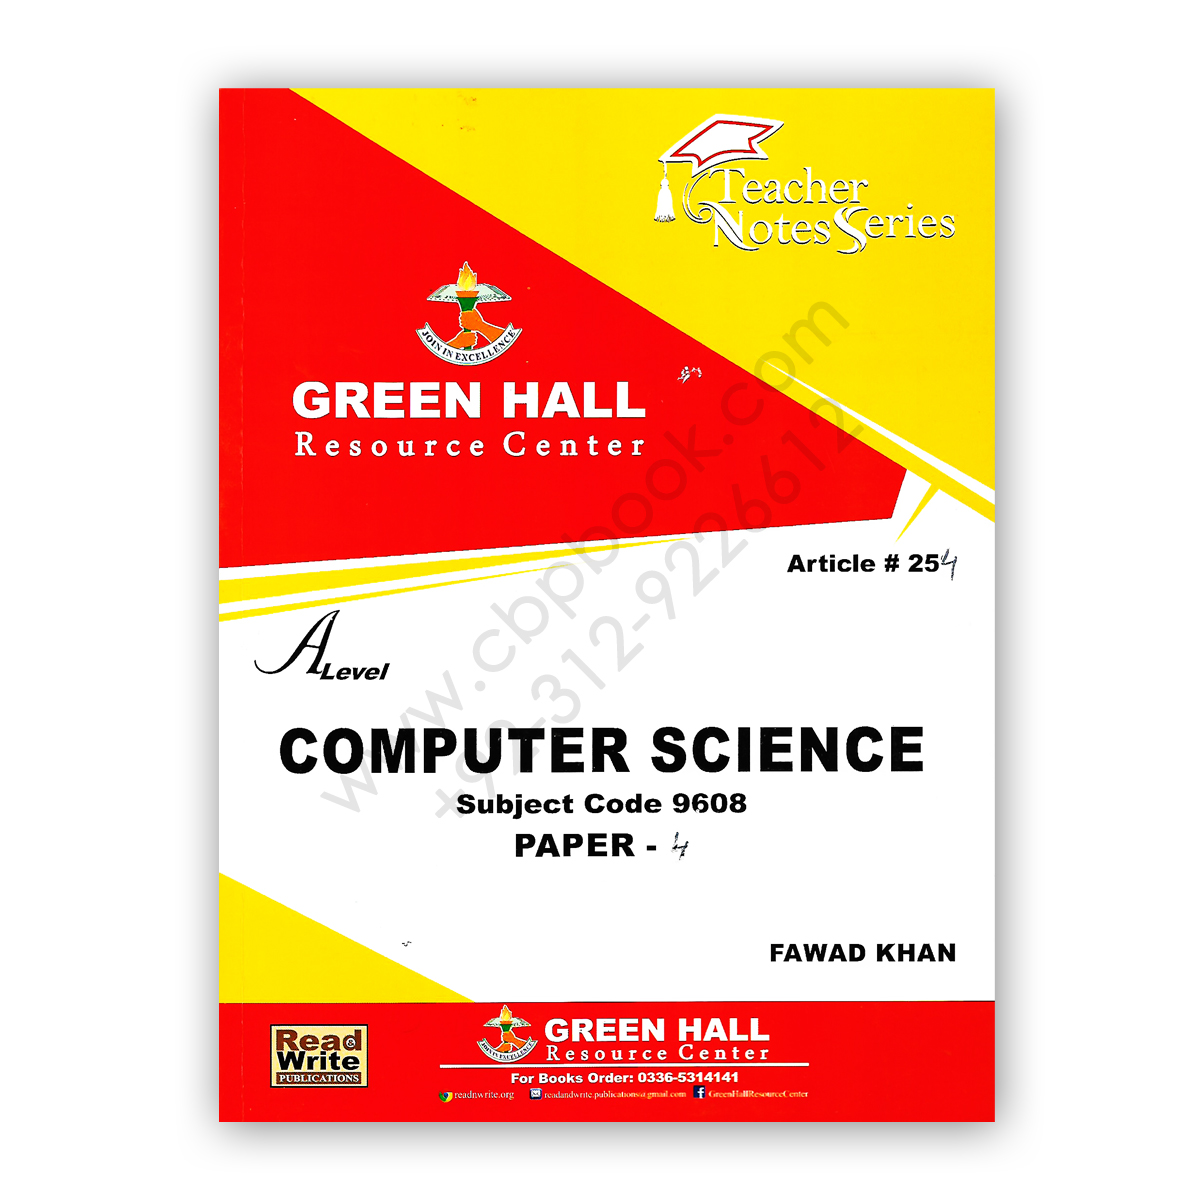 a level computer science p4 by fawad khan (art#254) - green hall